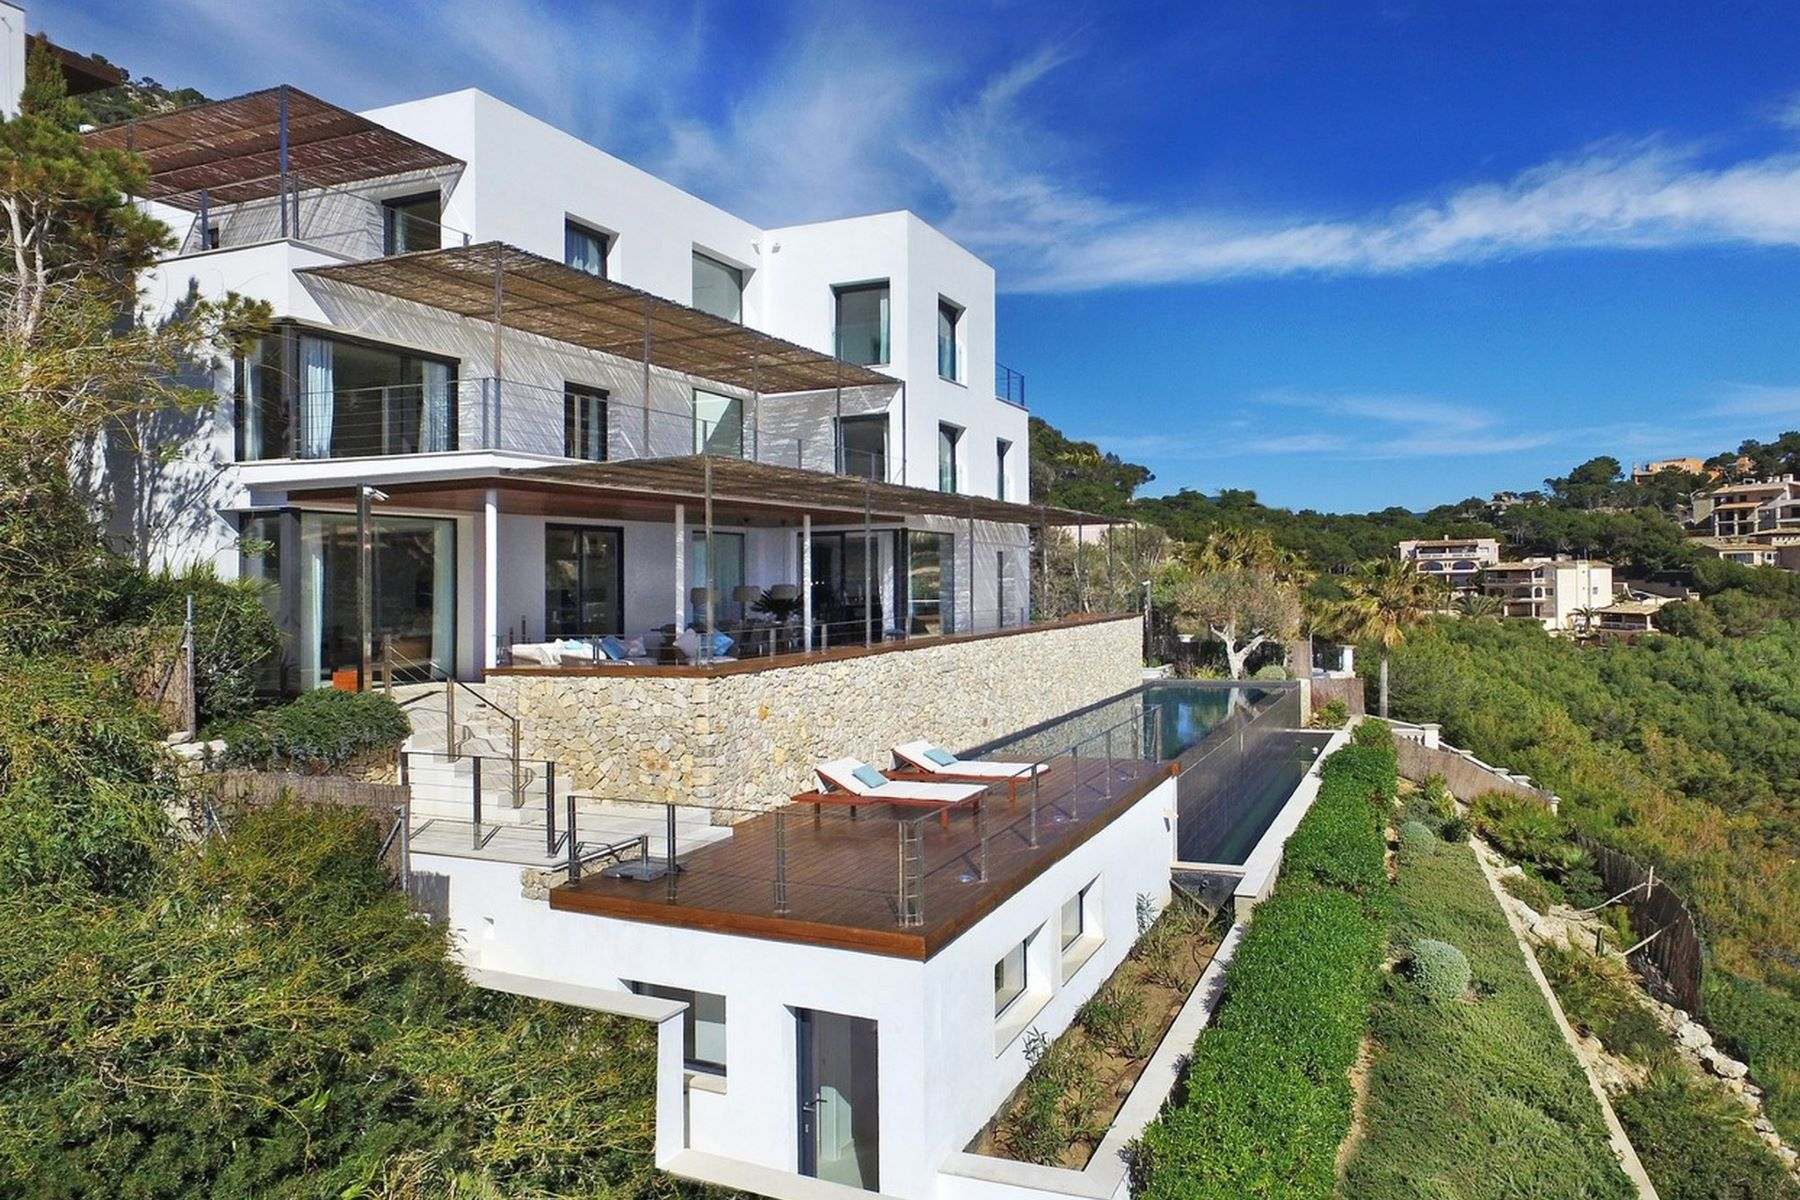 Single Family Home for Sale at Villa for sale with sea views in Cala Moragues Port d Andratx, Balearic Islands, Spain